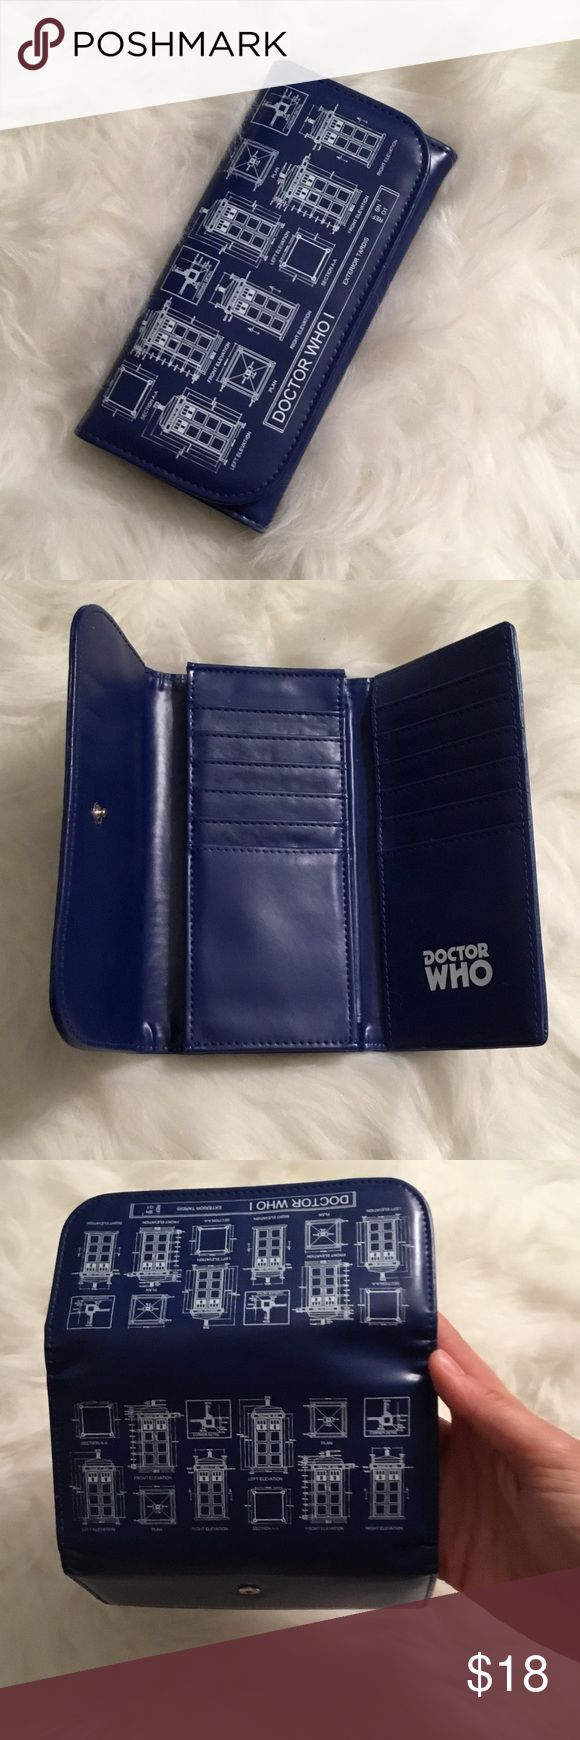 """Like New Doctor Who Wallet Like new trifold Waller with clasp. Tardis blueprint print. Tardis blue color. Holds 12 cards. Zippered coin pouch. 6.5"""" x 3"""" closed. Open: 6.5"""" x 9.5"""". No trades. Smoke free home. Open to offers. Doctor Who Bags Wallets"""